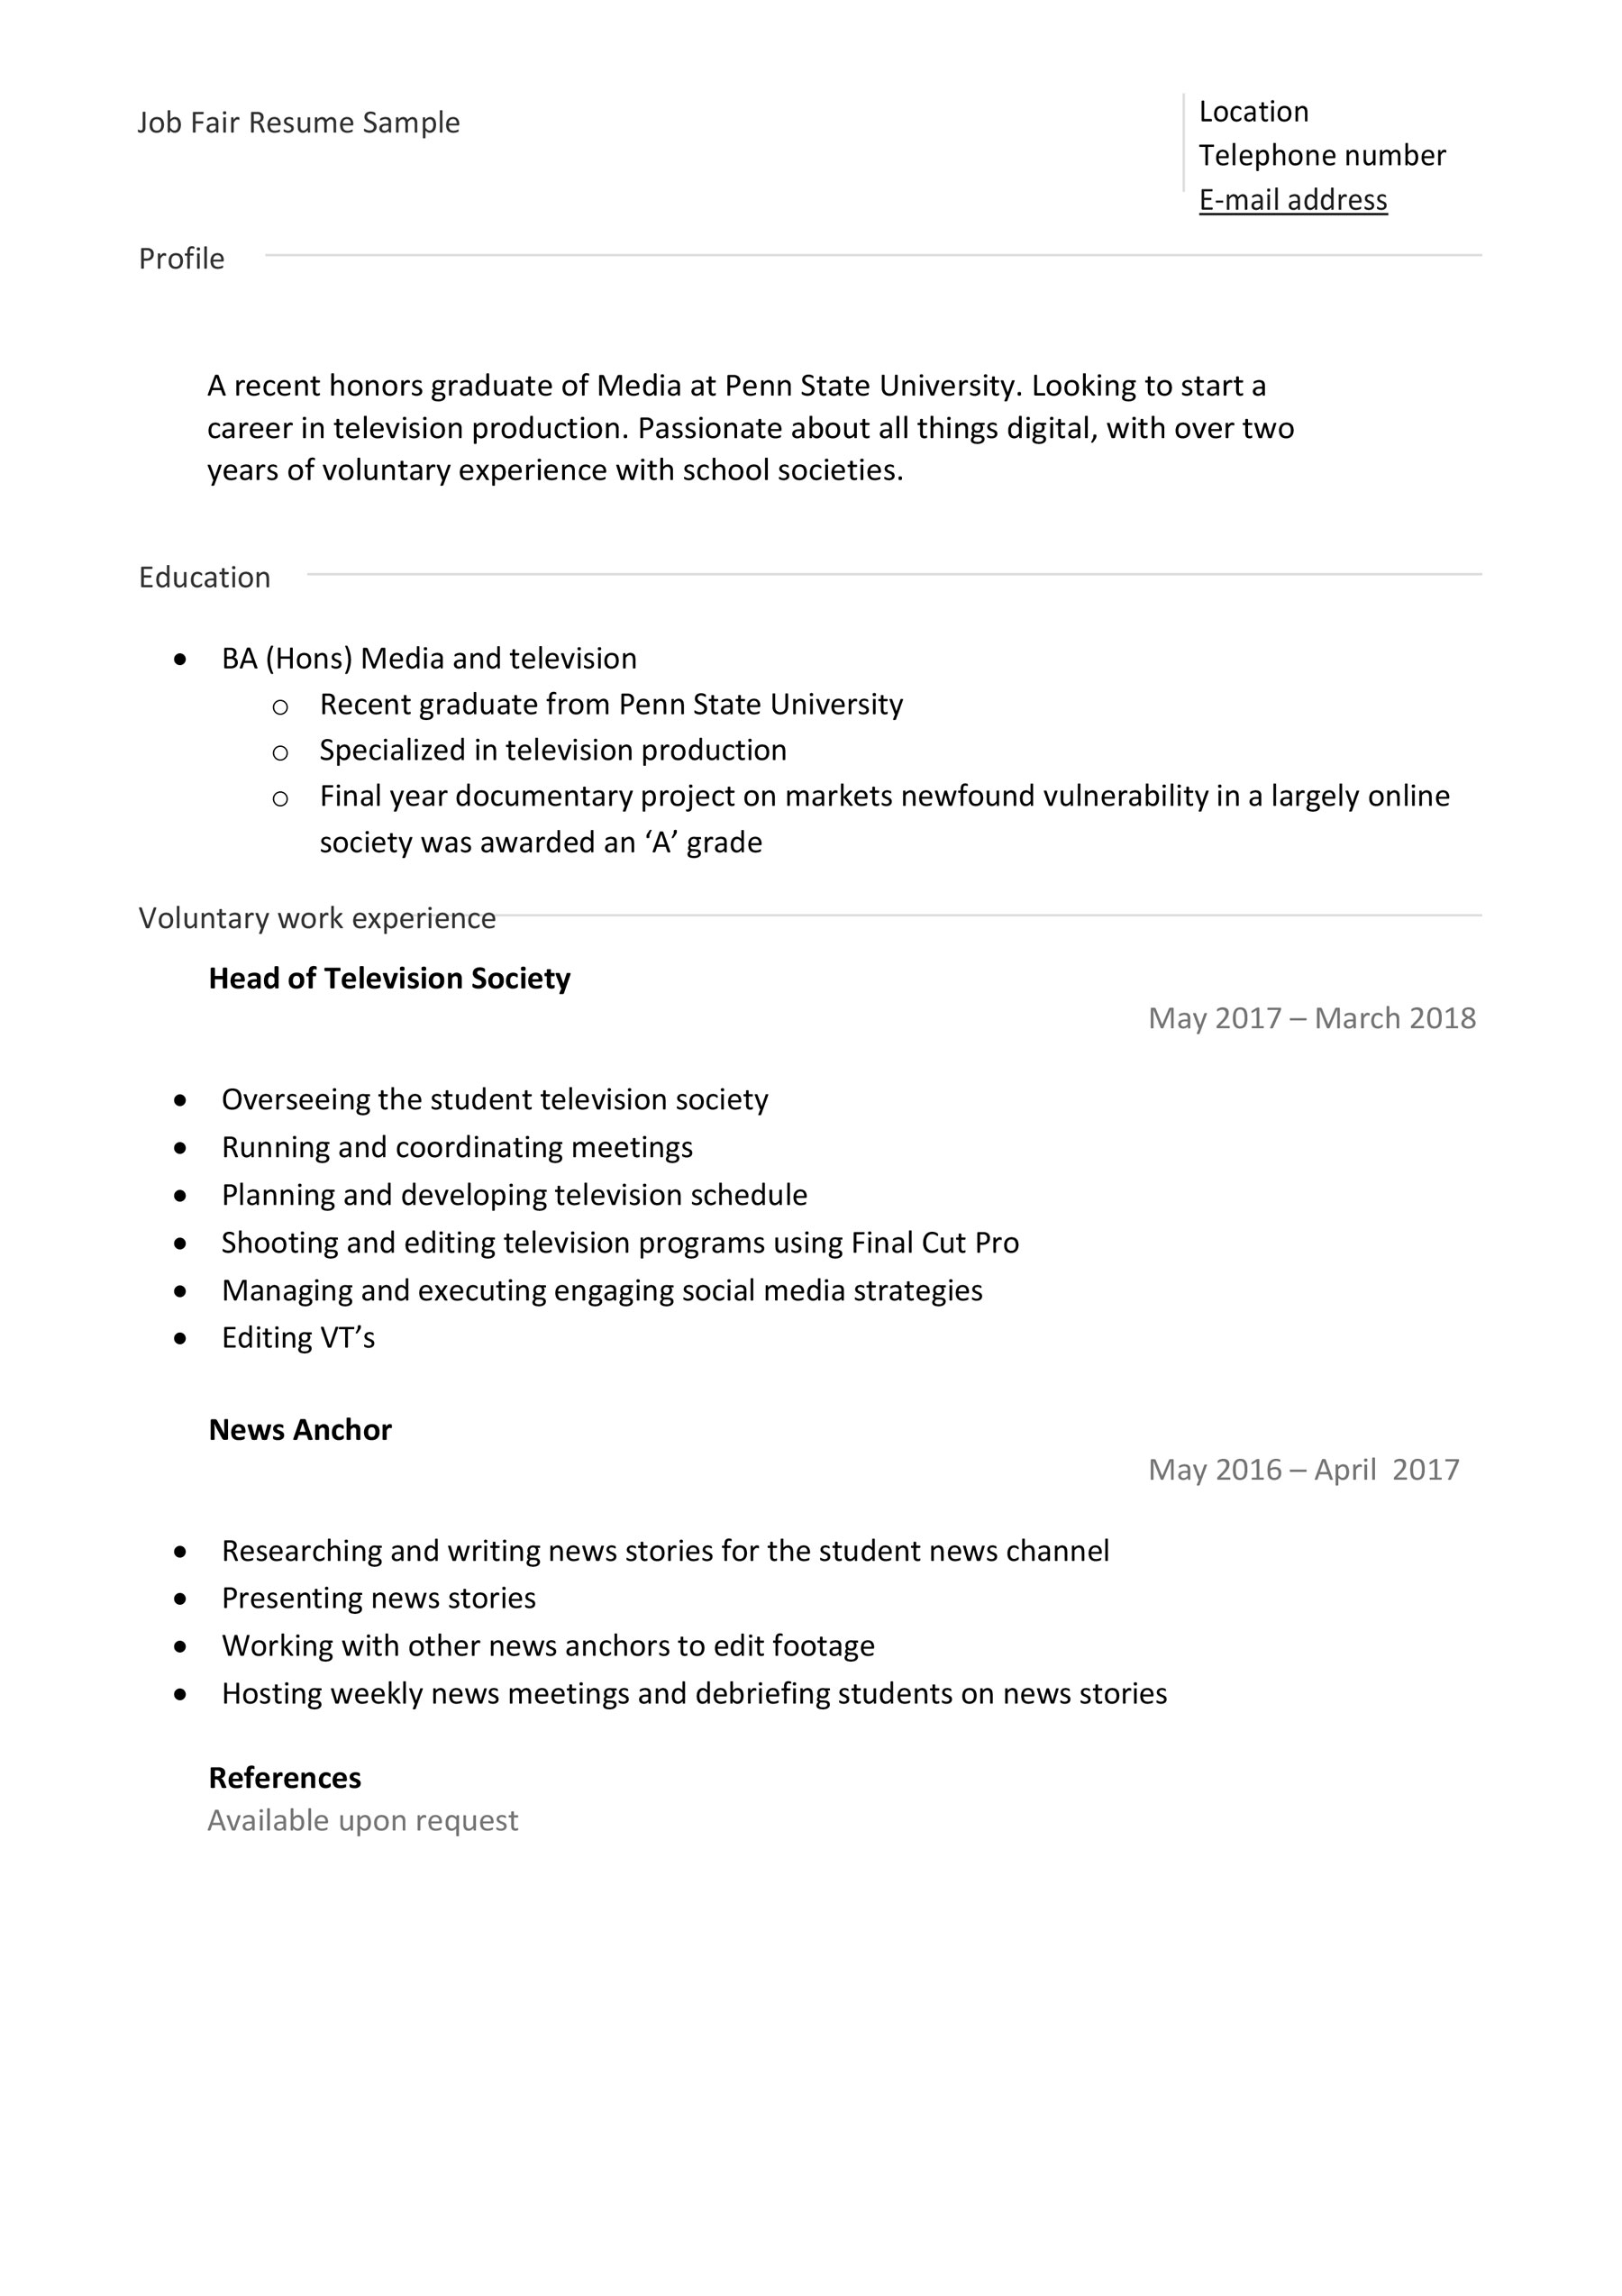 Job Fair Resume Example